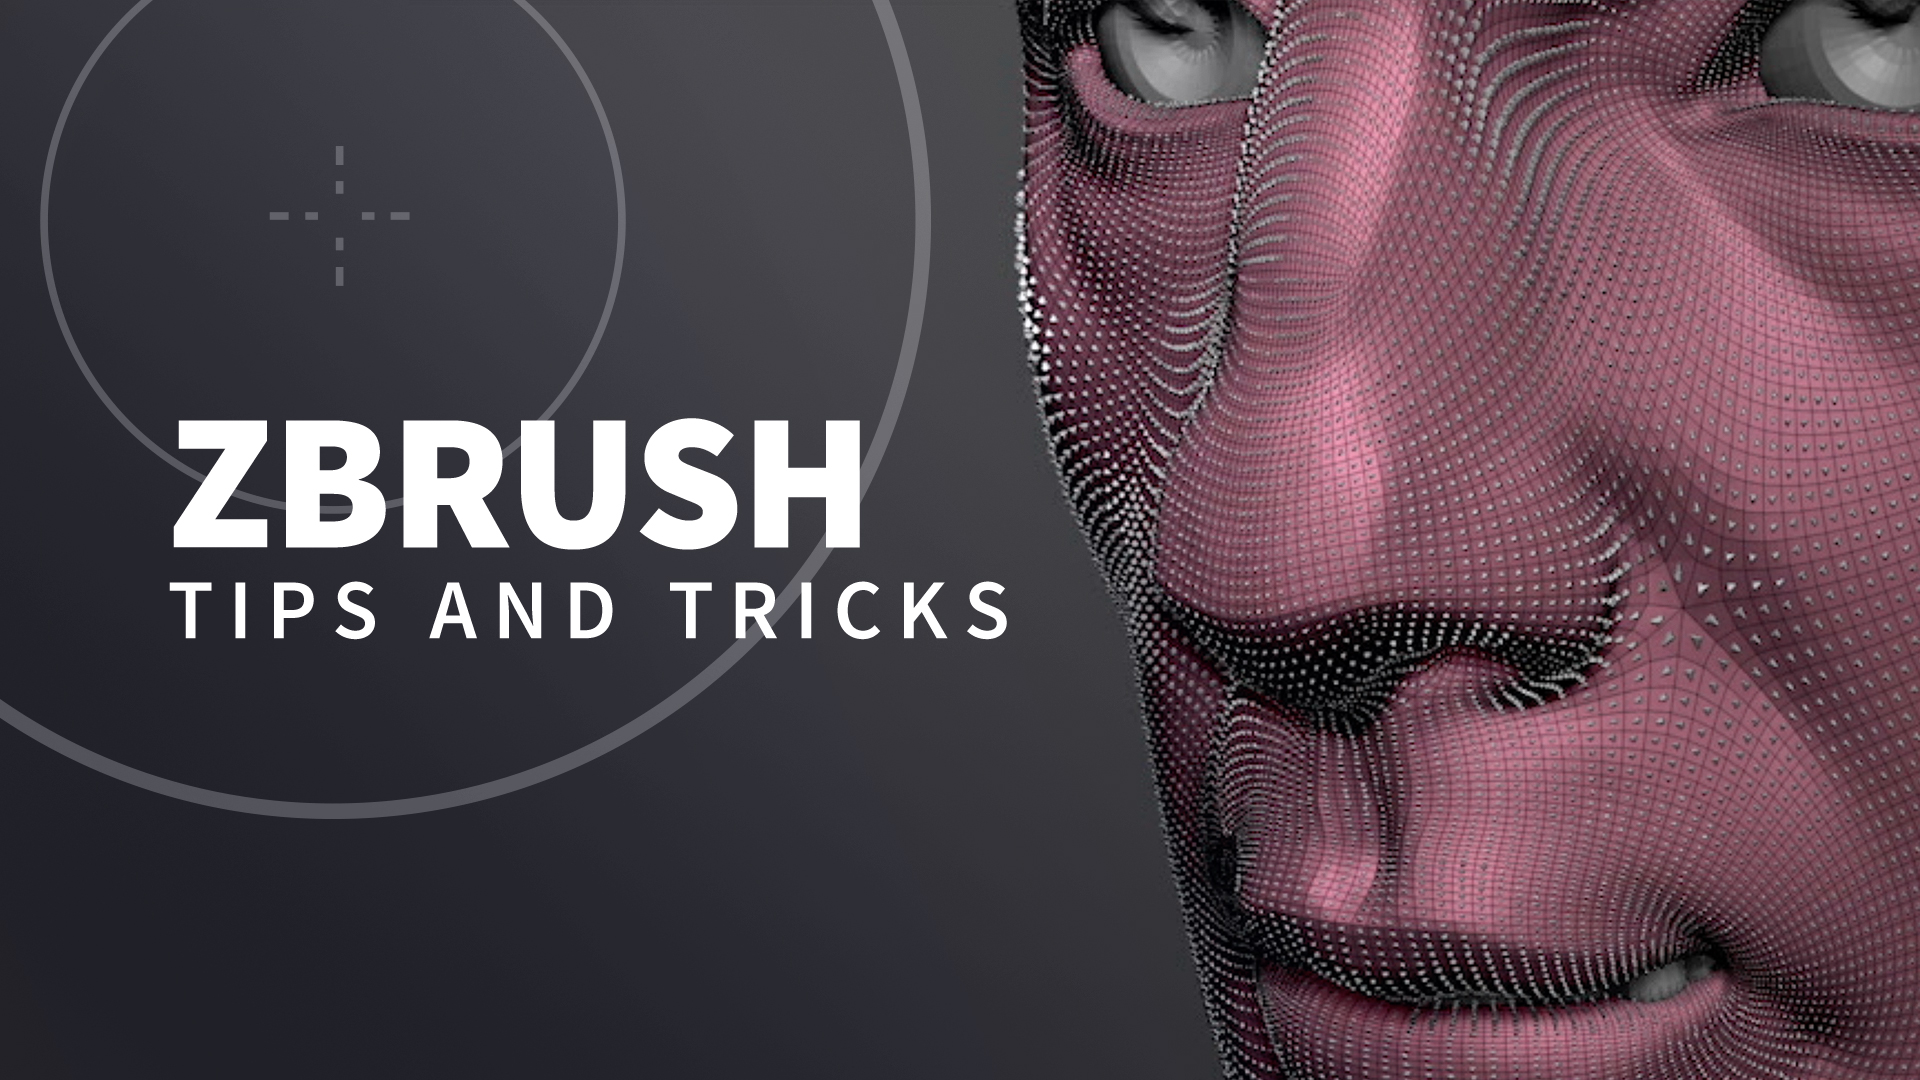 ZBrush: Tips and Tricks